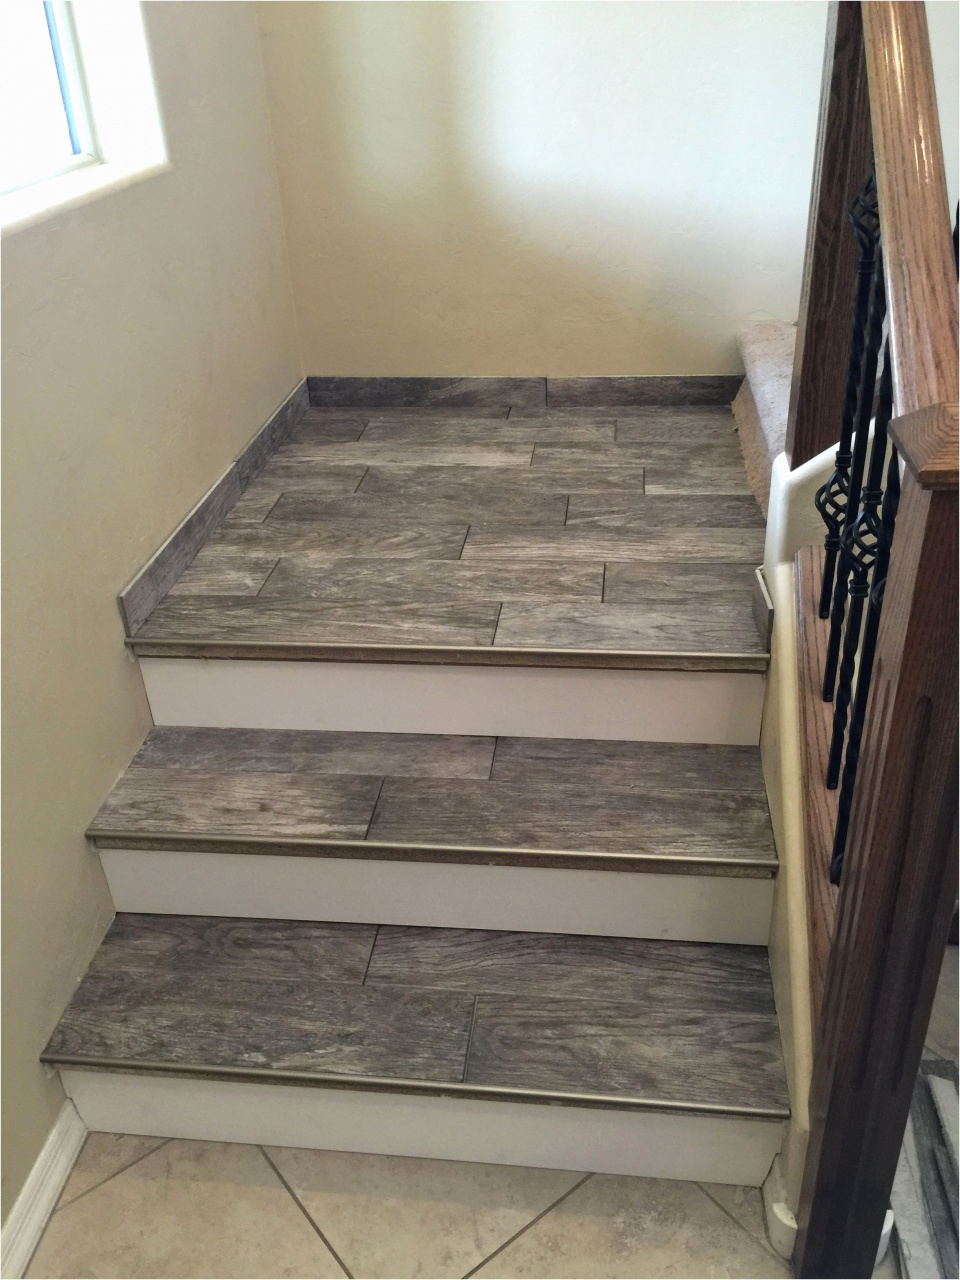 Image of: Vinyl Stairs Treads And Risers 49 Inspirational Staircase In The Woods Staircase Equalmarriagefl Vinyl From Vinyl Stairs Treads And Risers Pictures